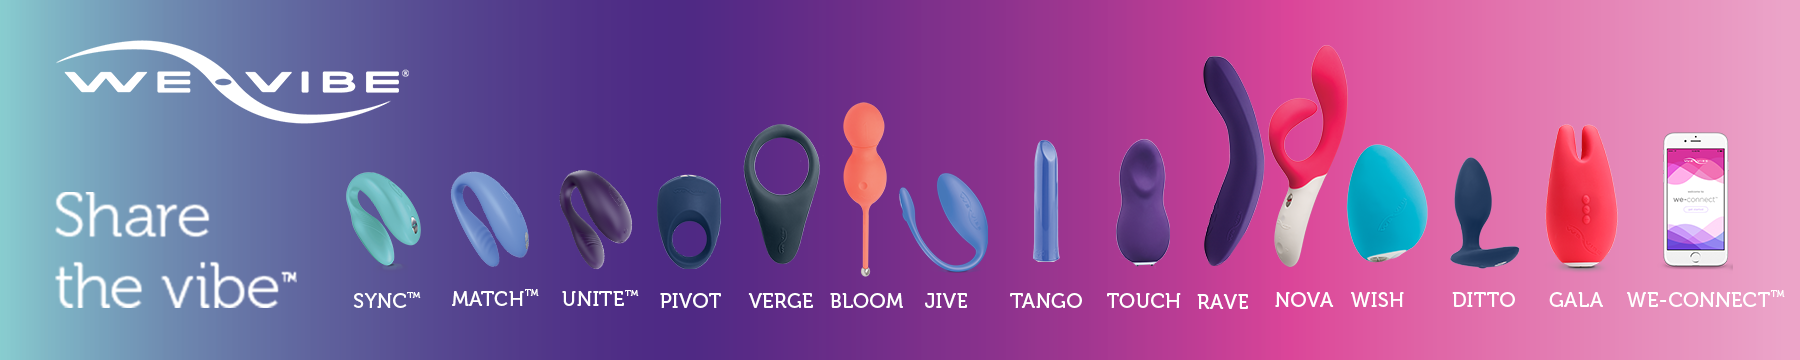 We-Vibe at Bed Time Toys